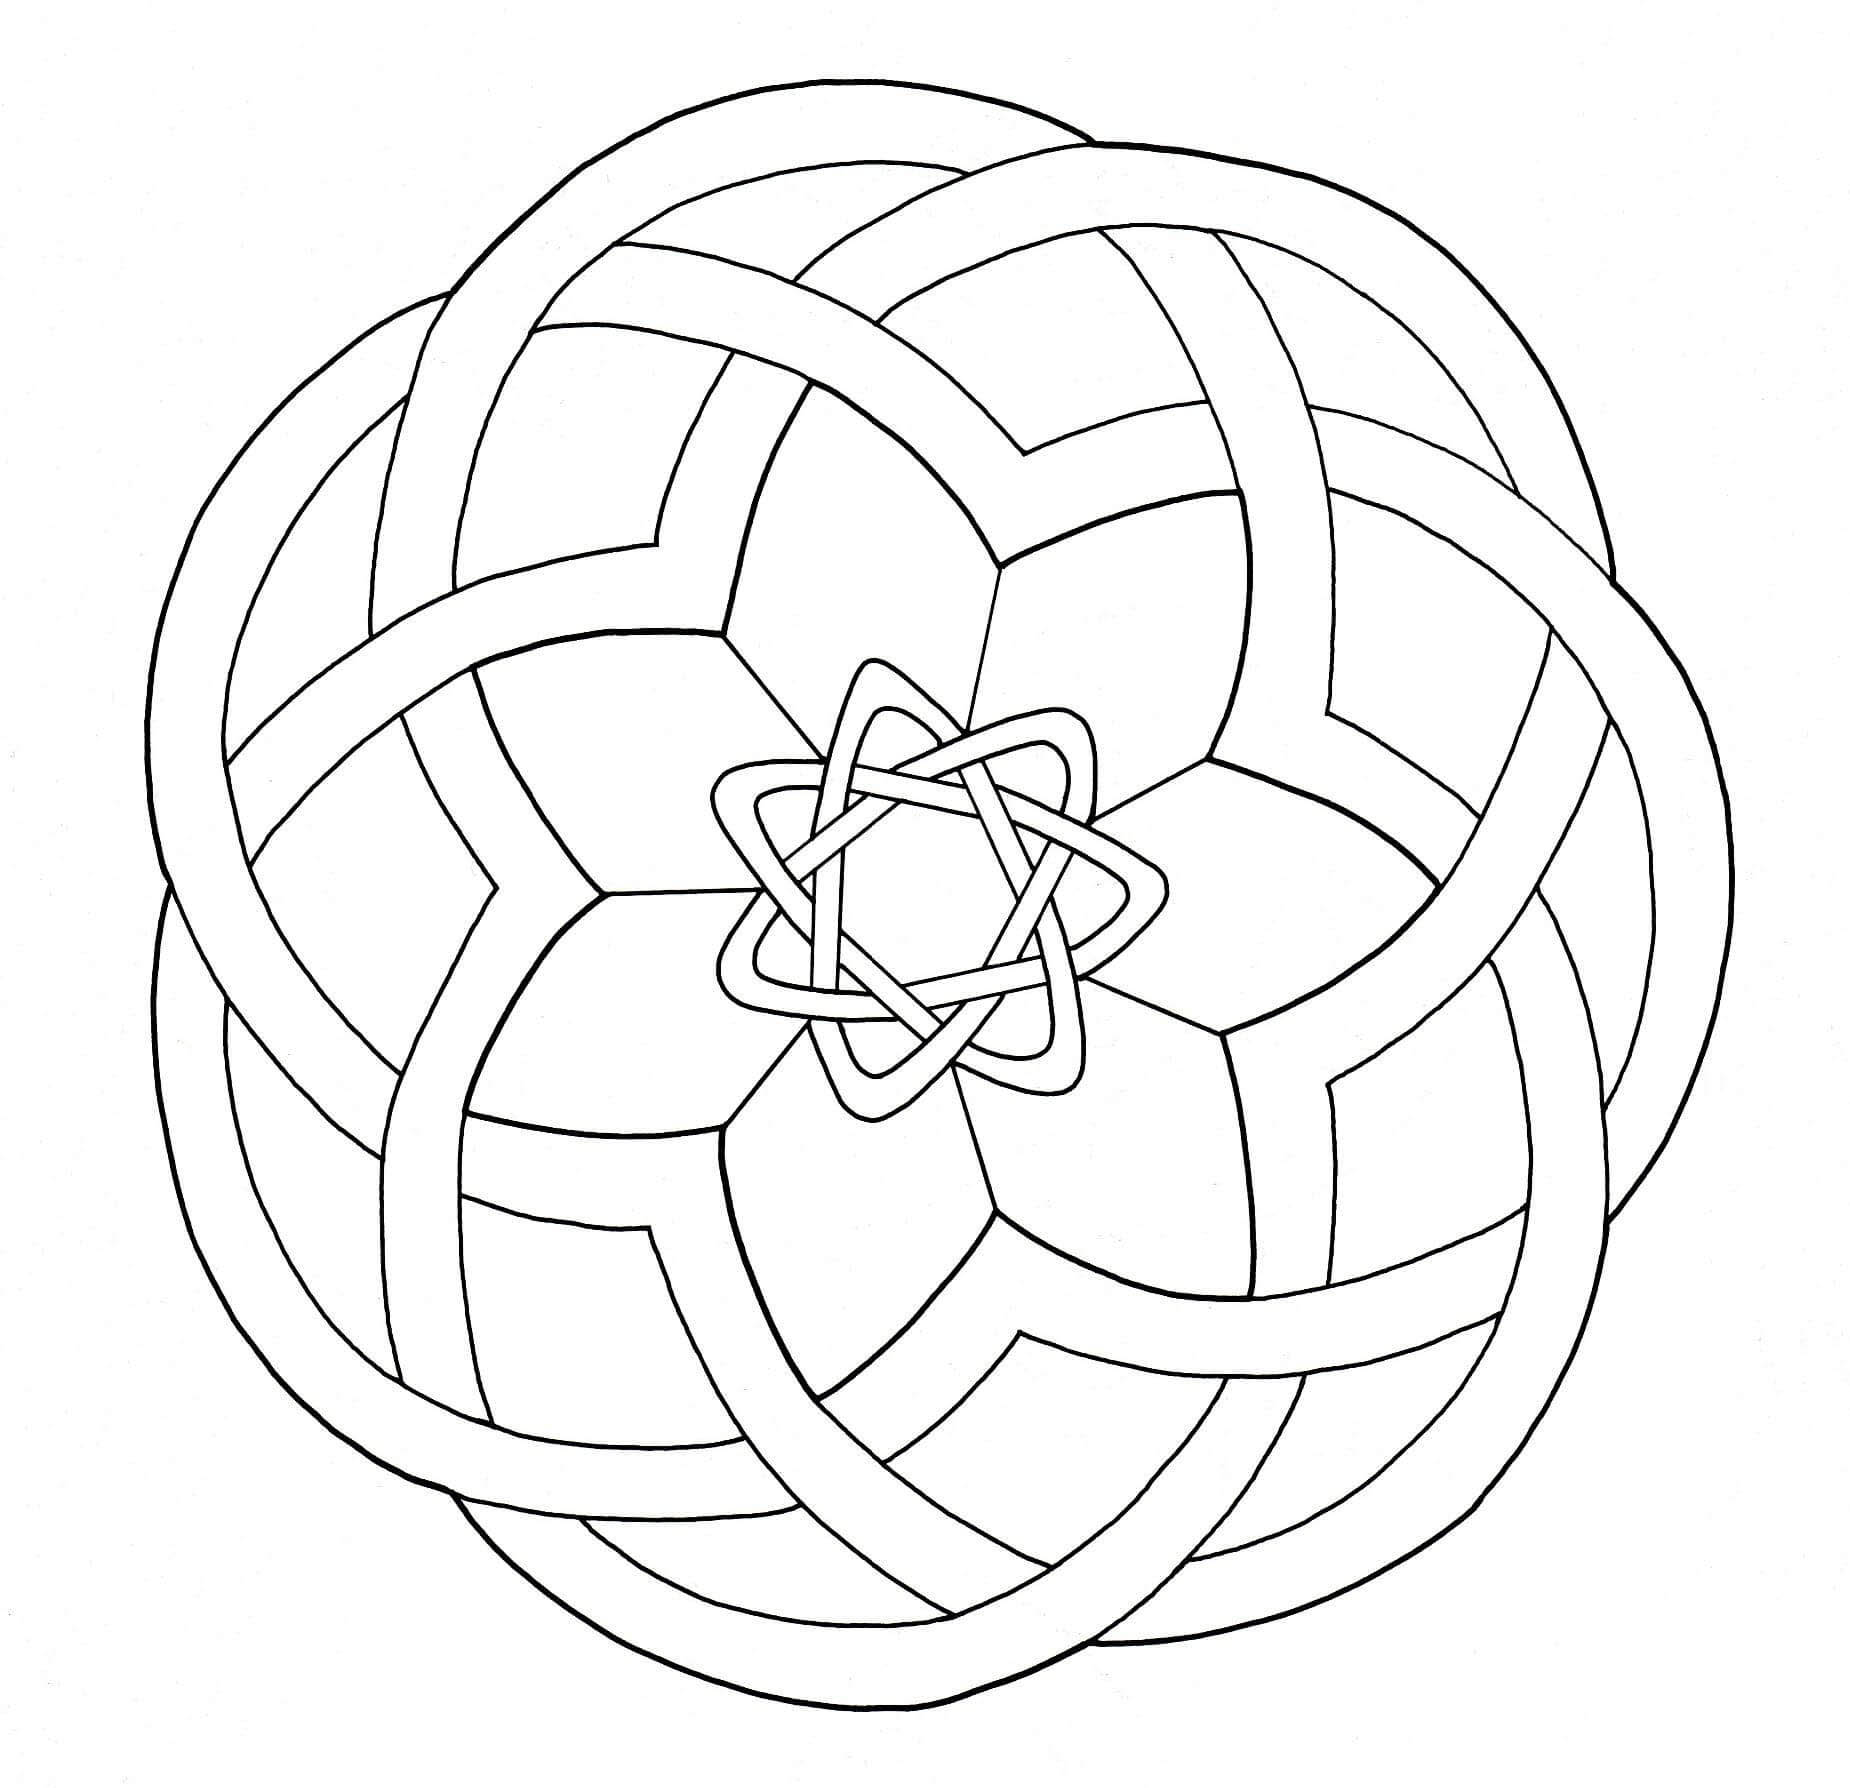 A Mandala out of the ordinary, which will allow you to spend a good time coloring, without complicating your life with too little areas, if it's not what you search for.